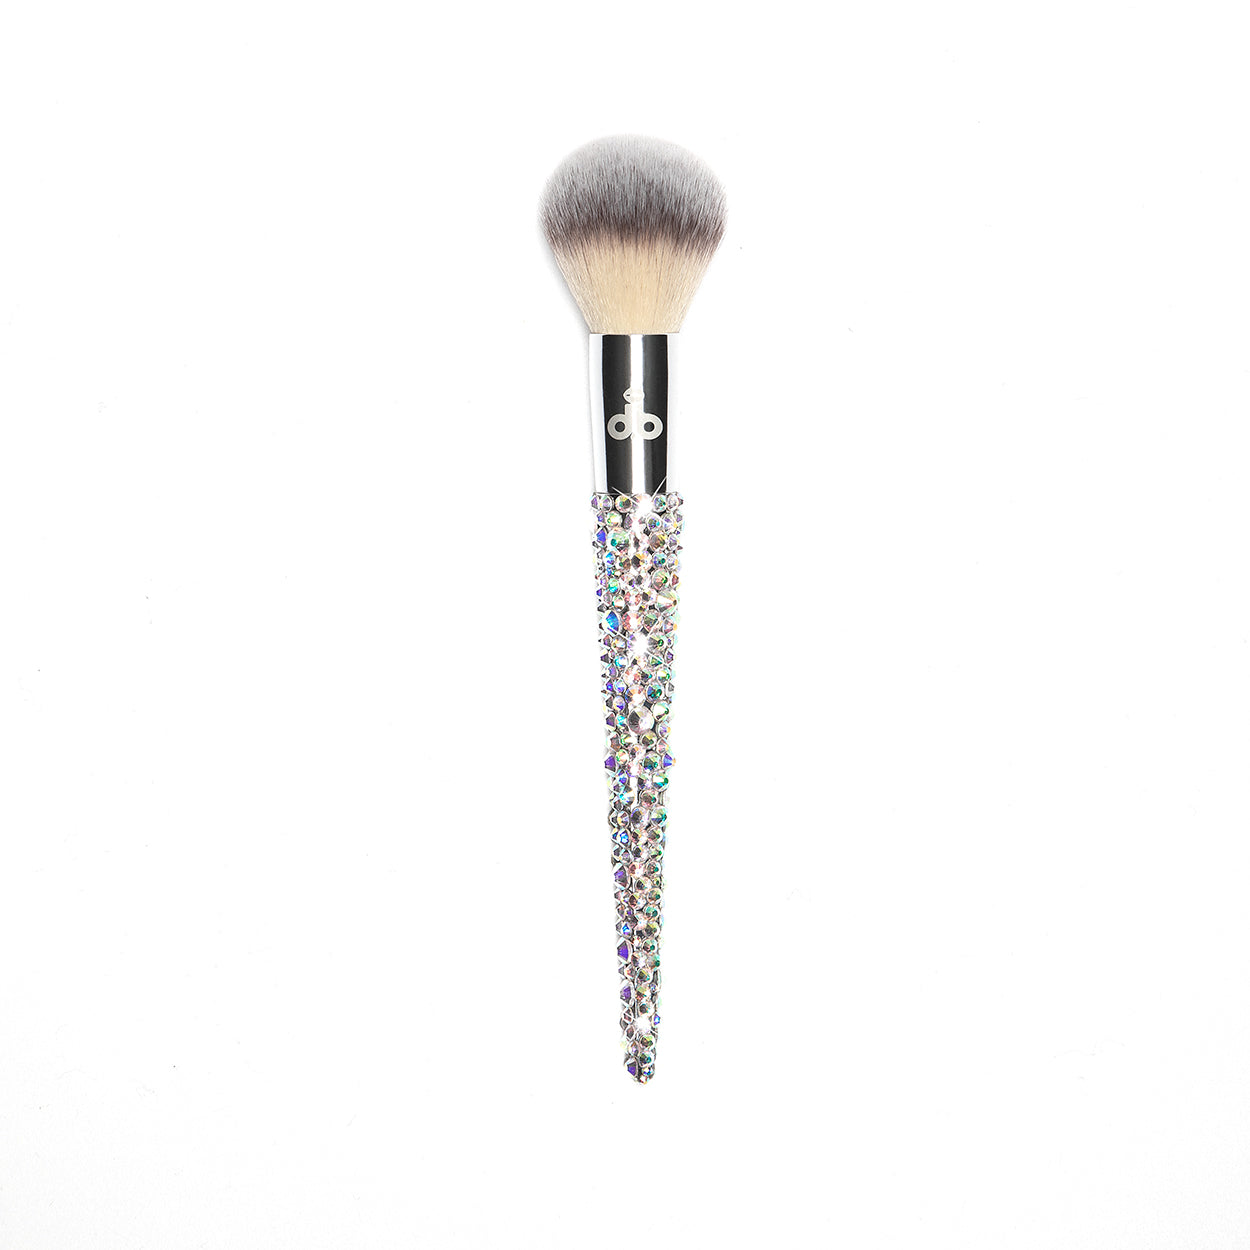 F1 - Large Powder Brush